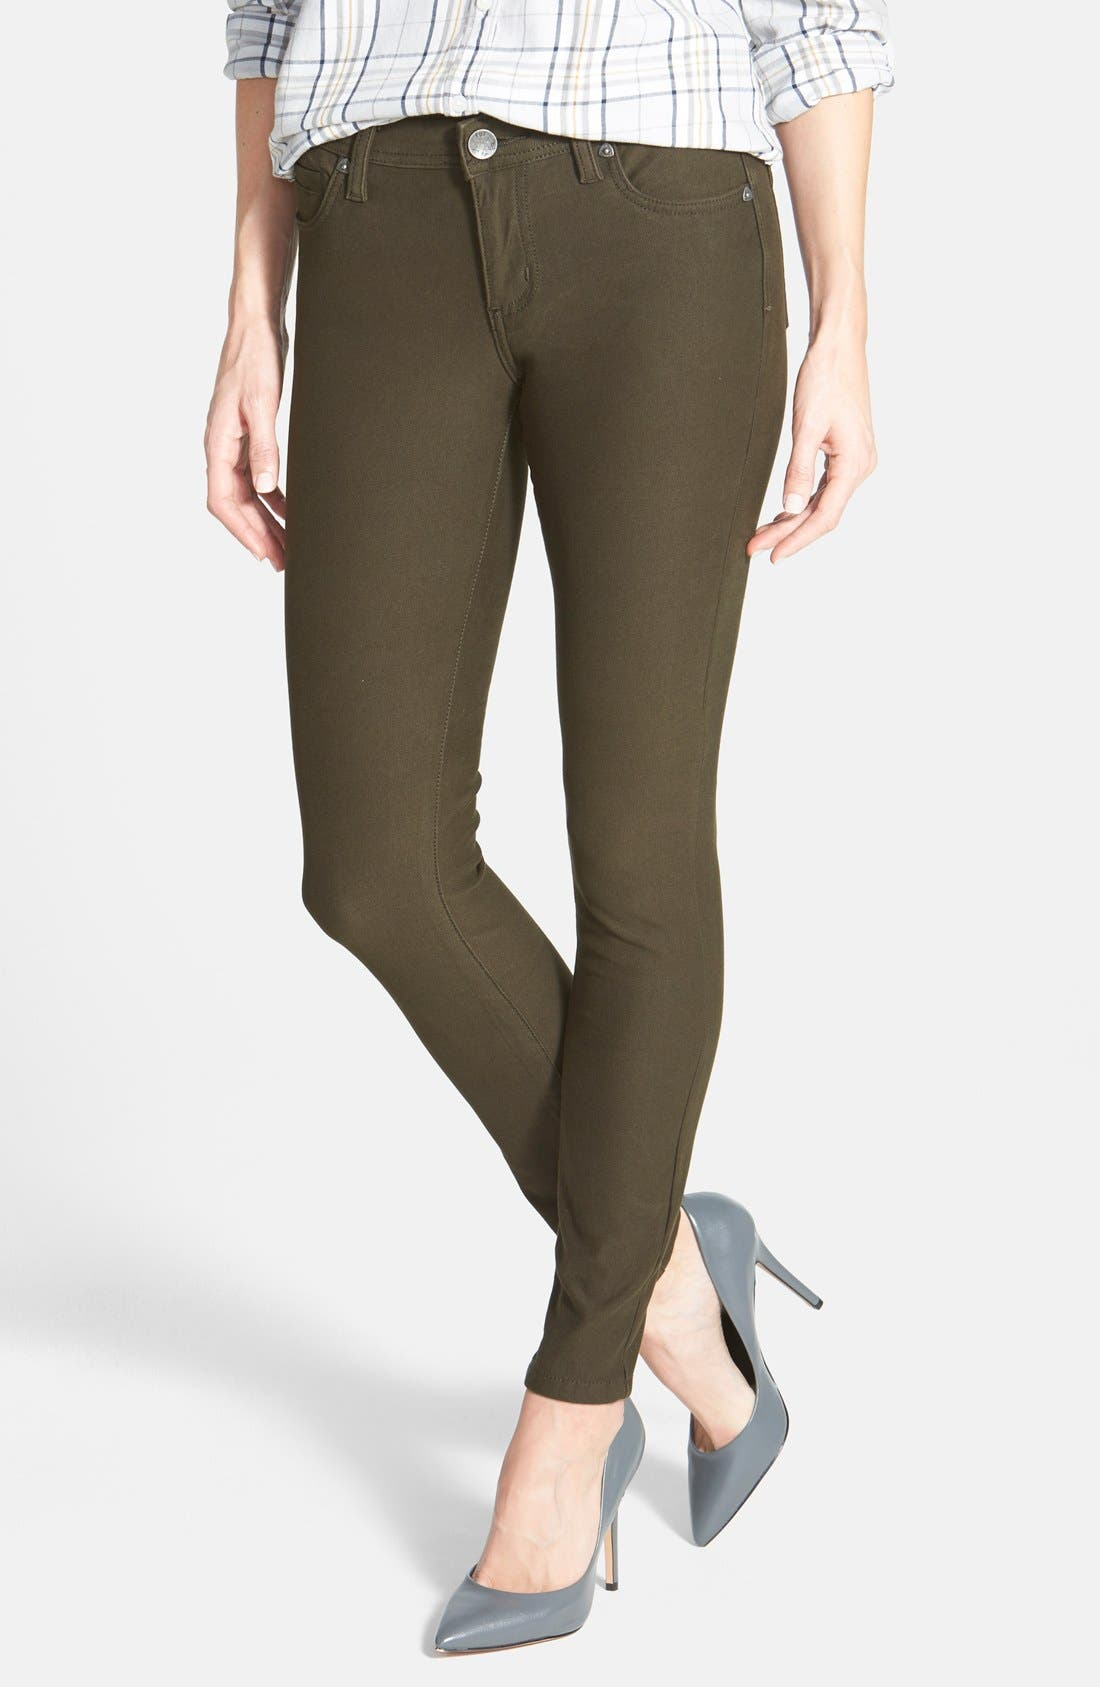 Main Image - KUT from the Kloth 'Mia' Colored Stretch Skinny Jeans